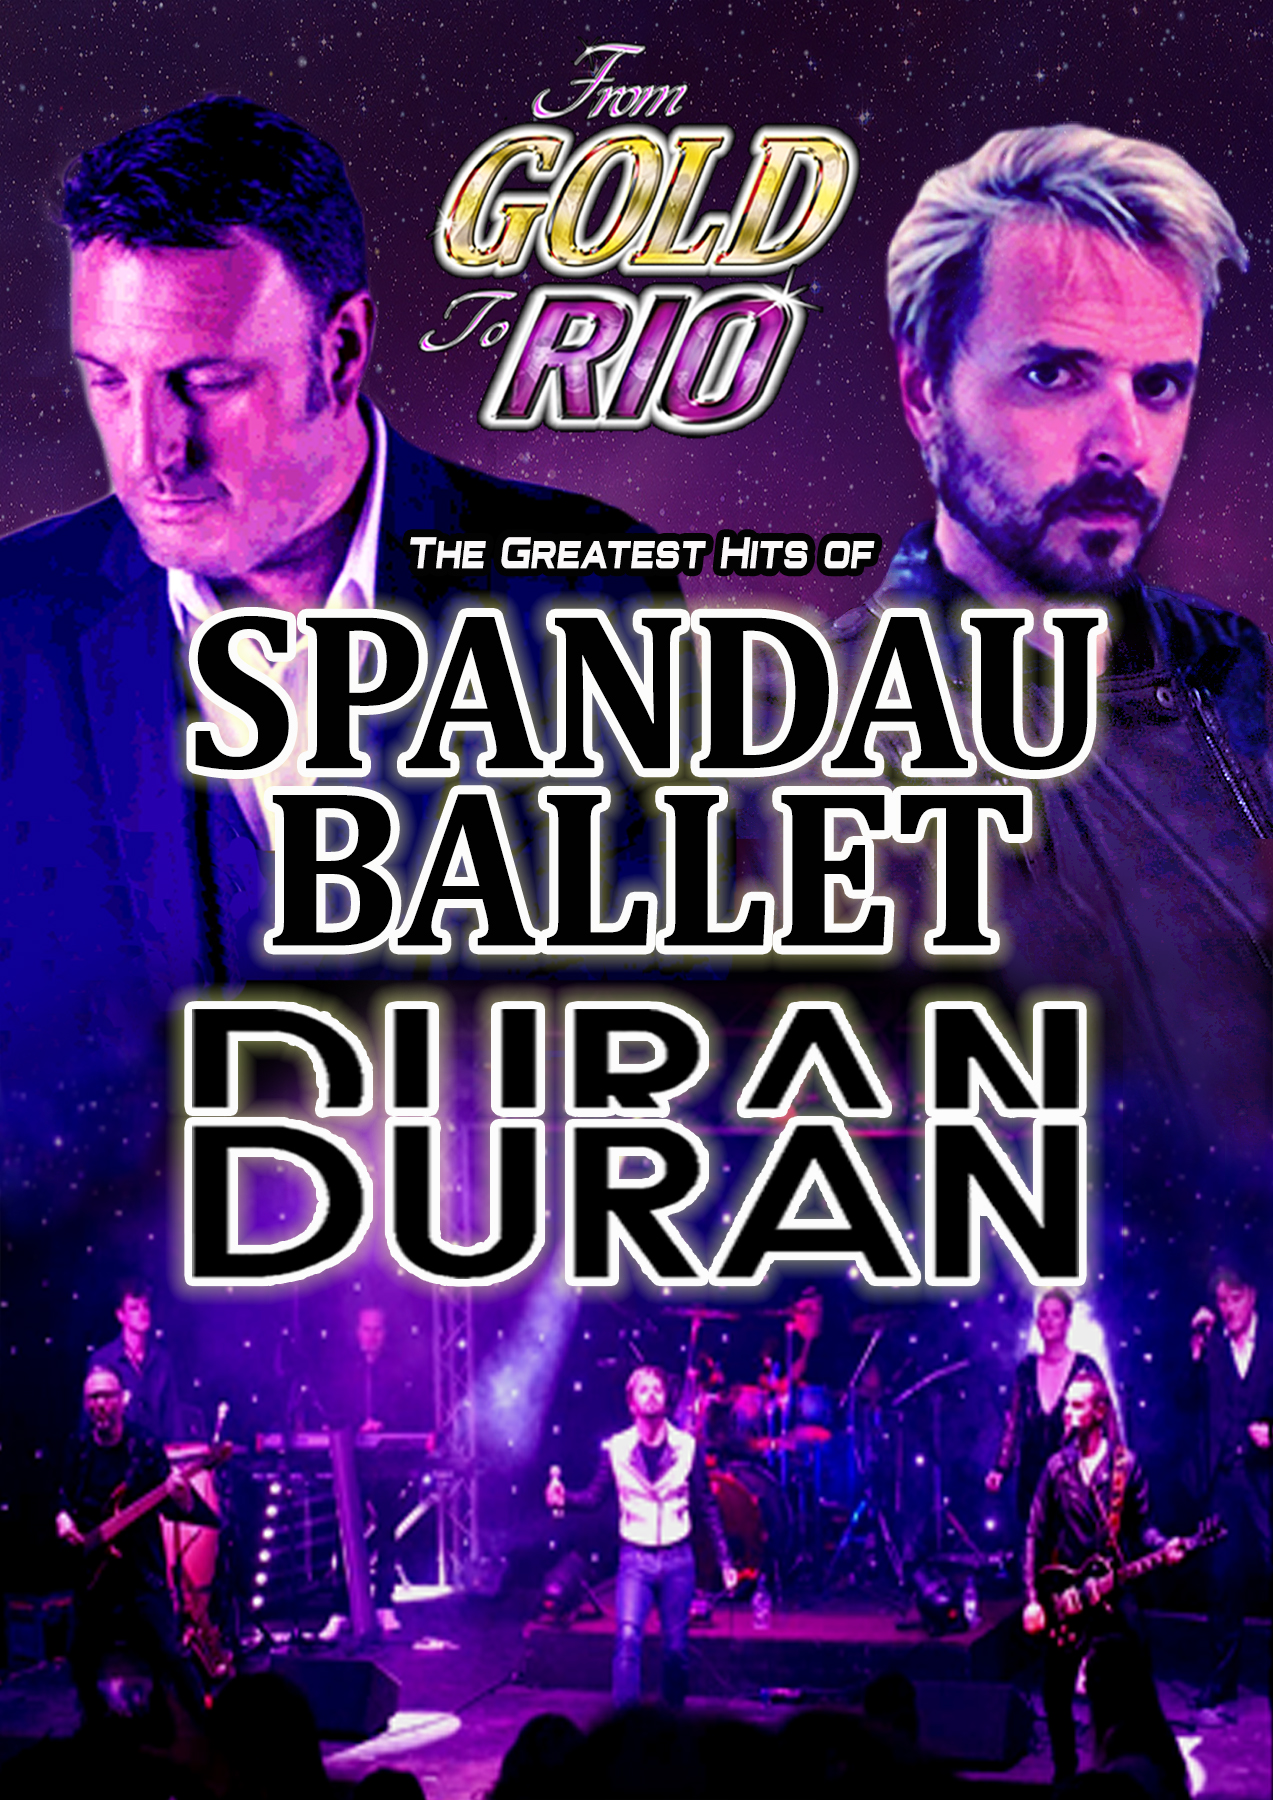 From Gold to Rio-The Greatest Hits of Spandau Ballet & Duran Duran